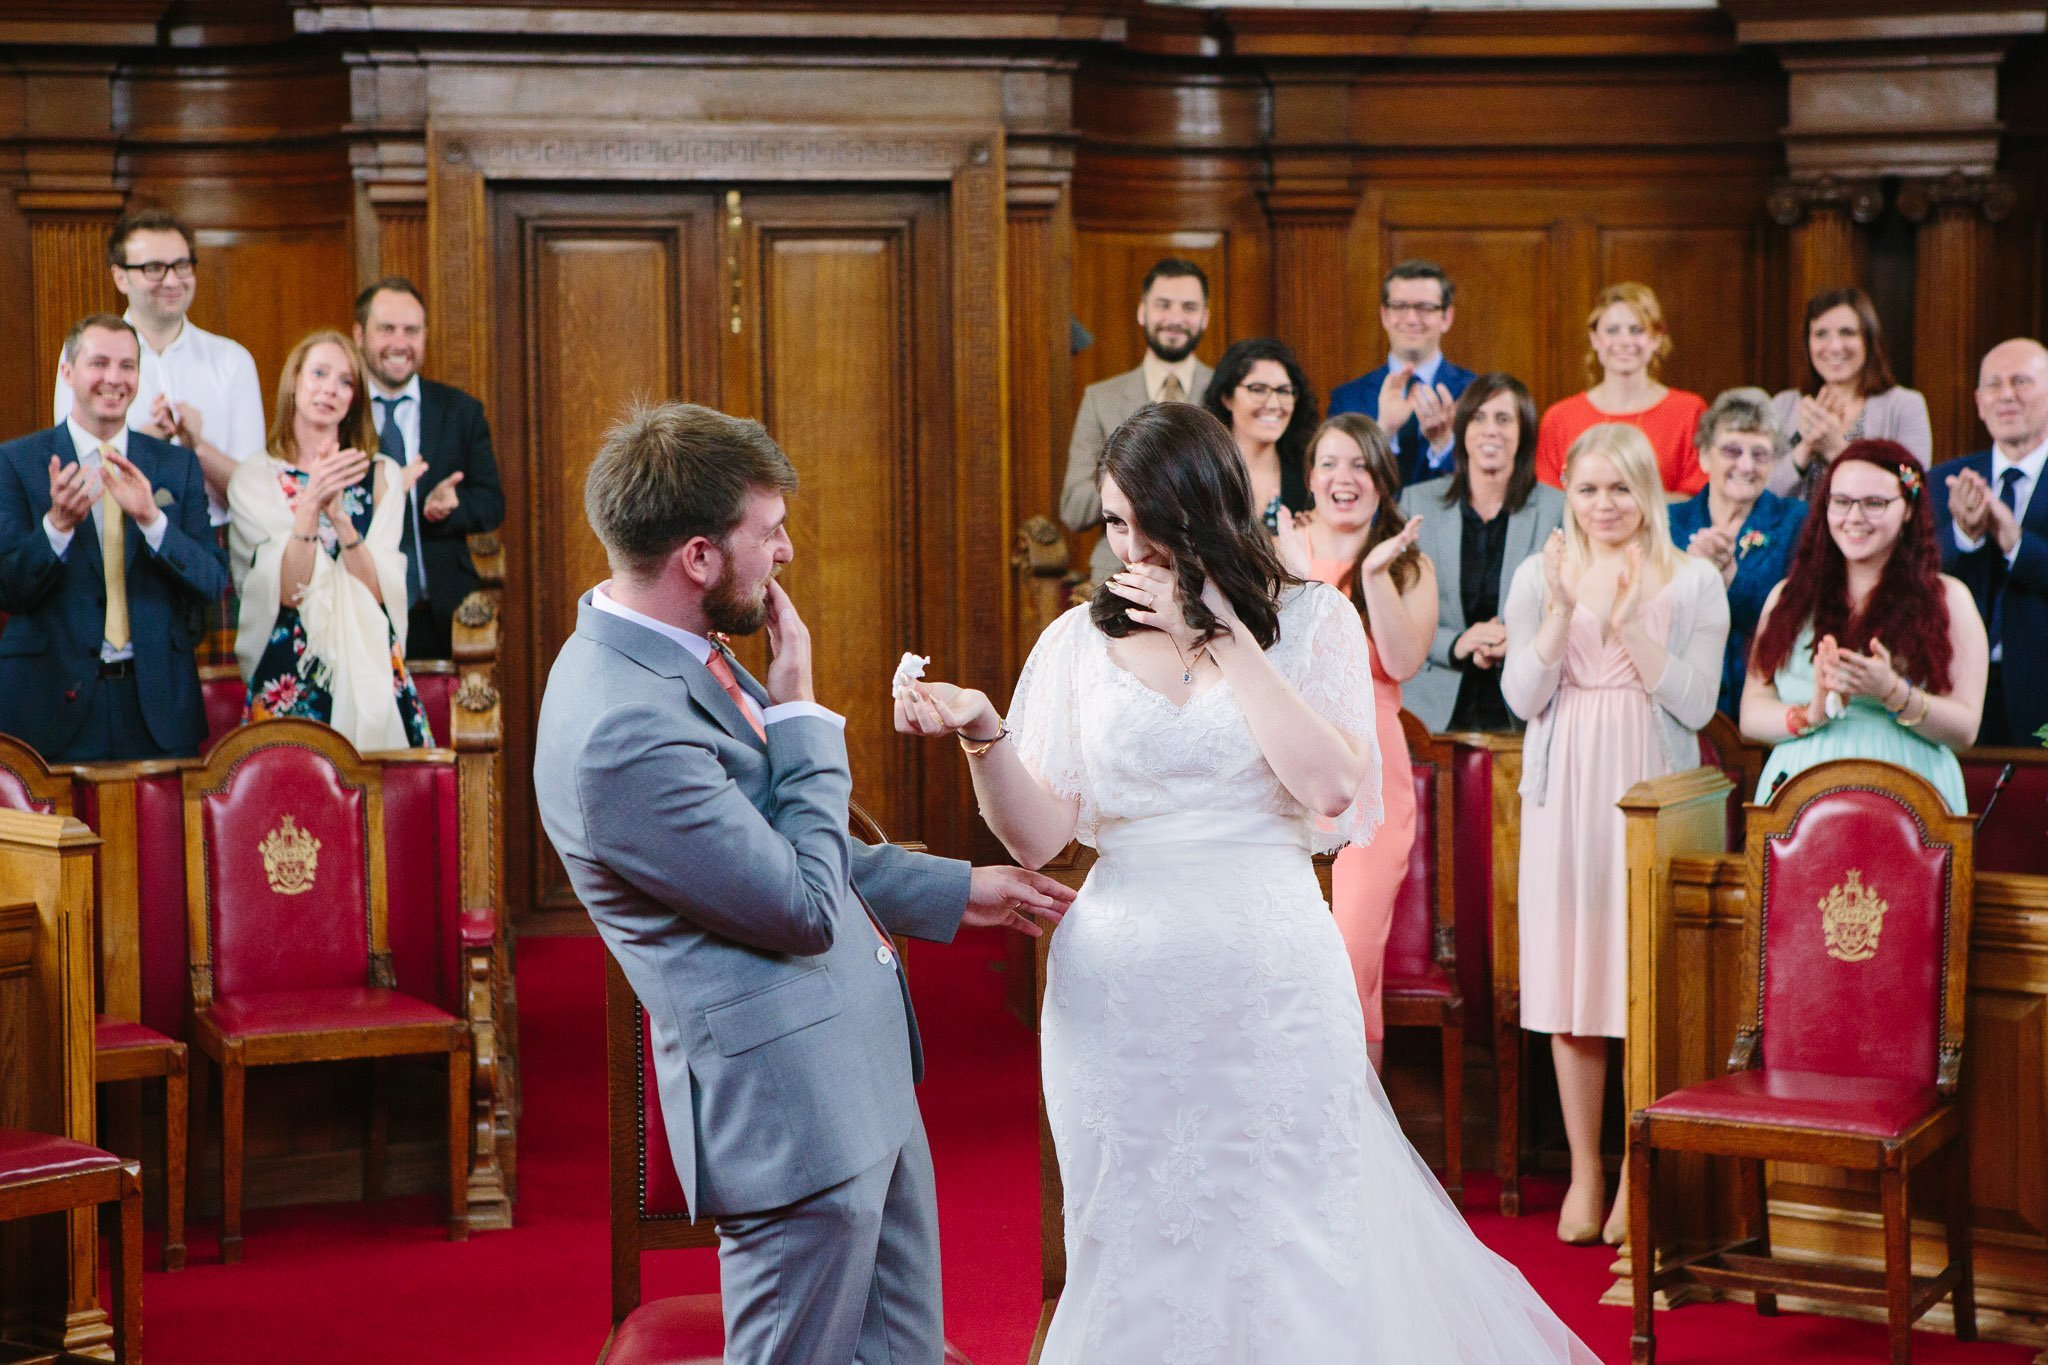 Laughing bride & groom at Islington Town Hall Wedding